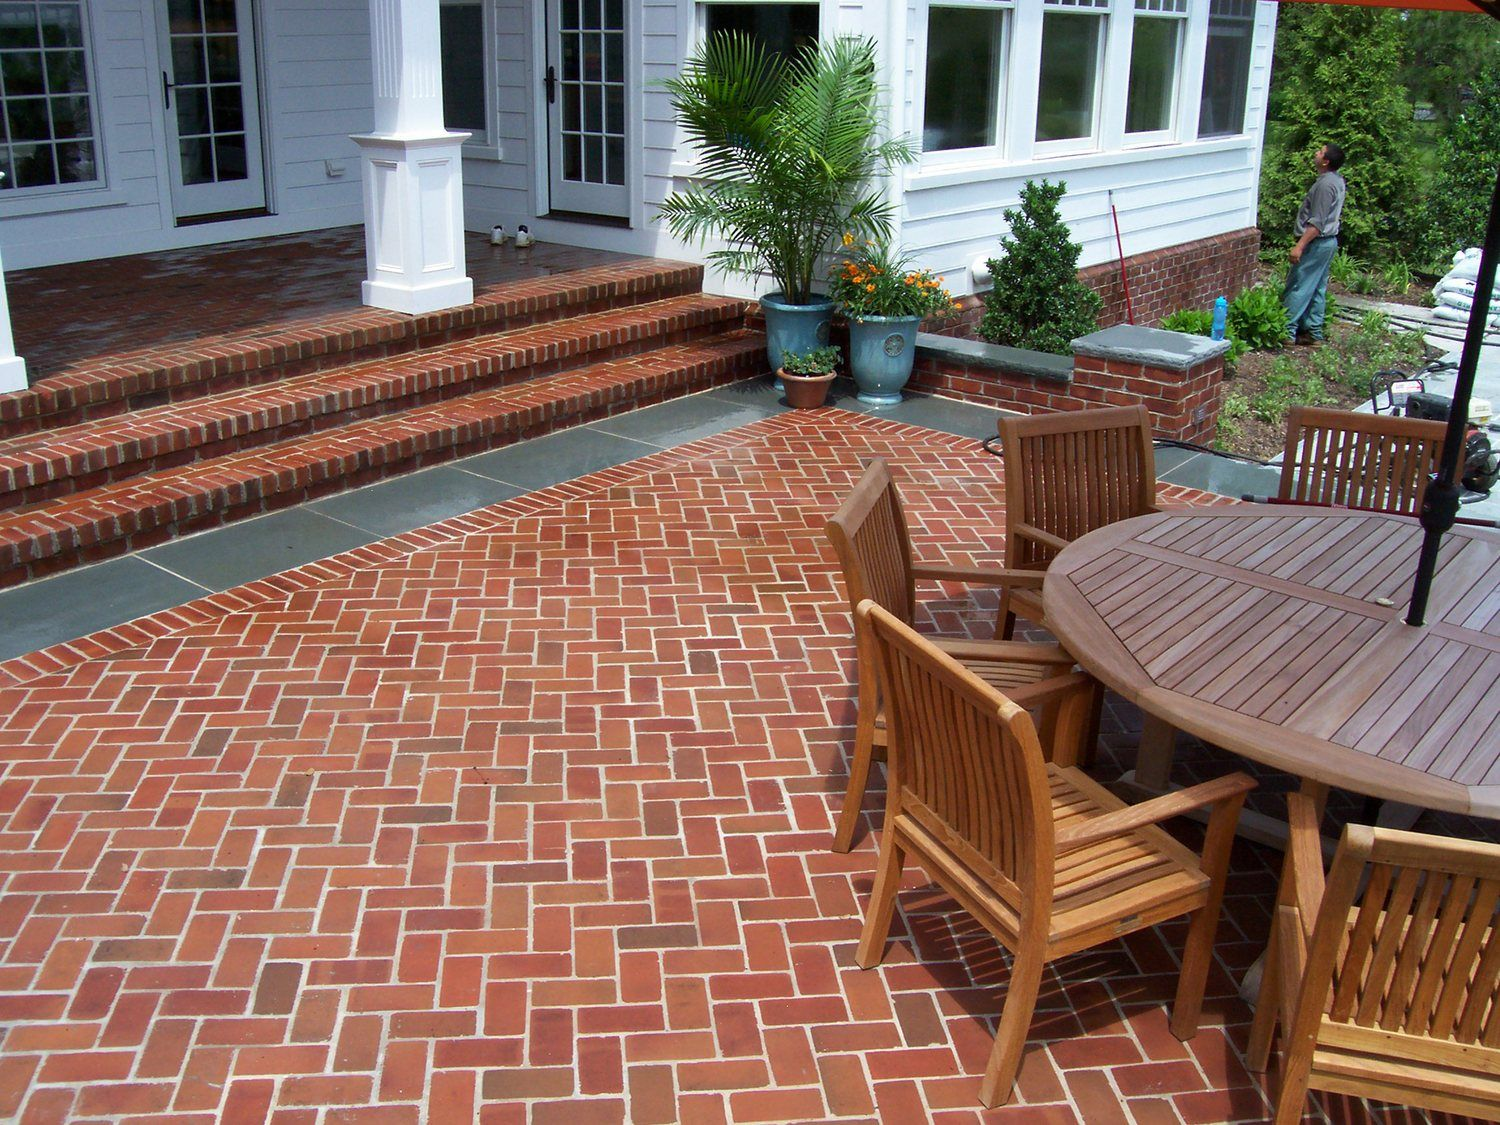 Brick Pavers In A Herringbone Pattern Set With A Flamed